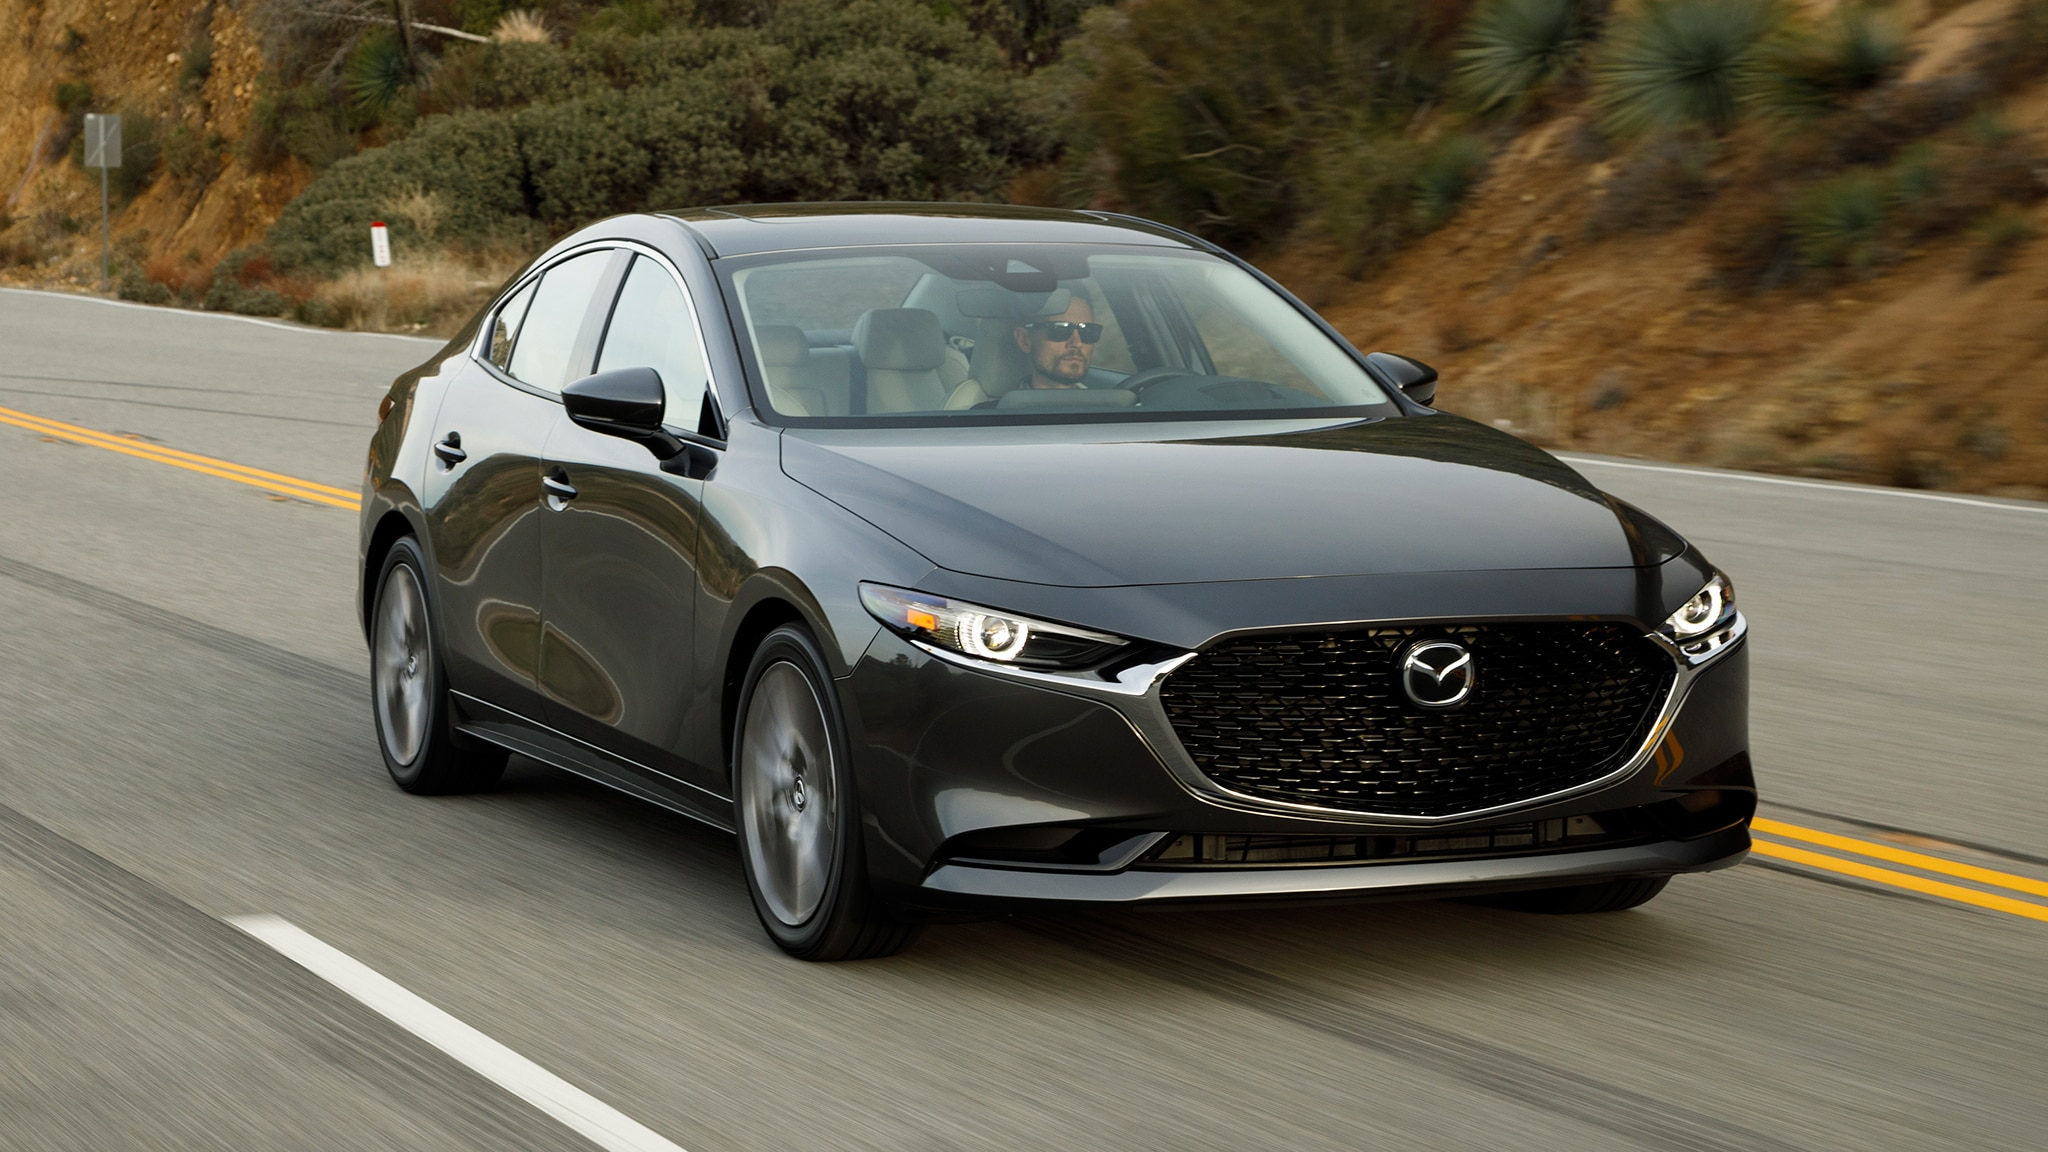 2019 mazda 3 first drive review  advancing the compact